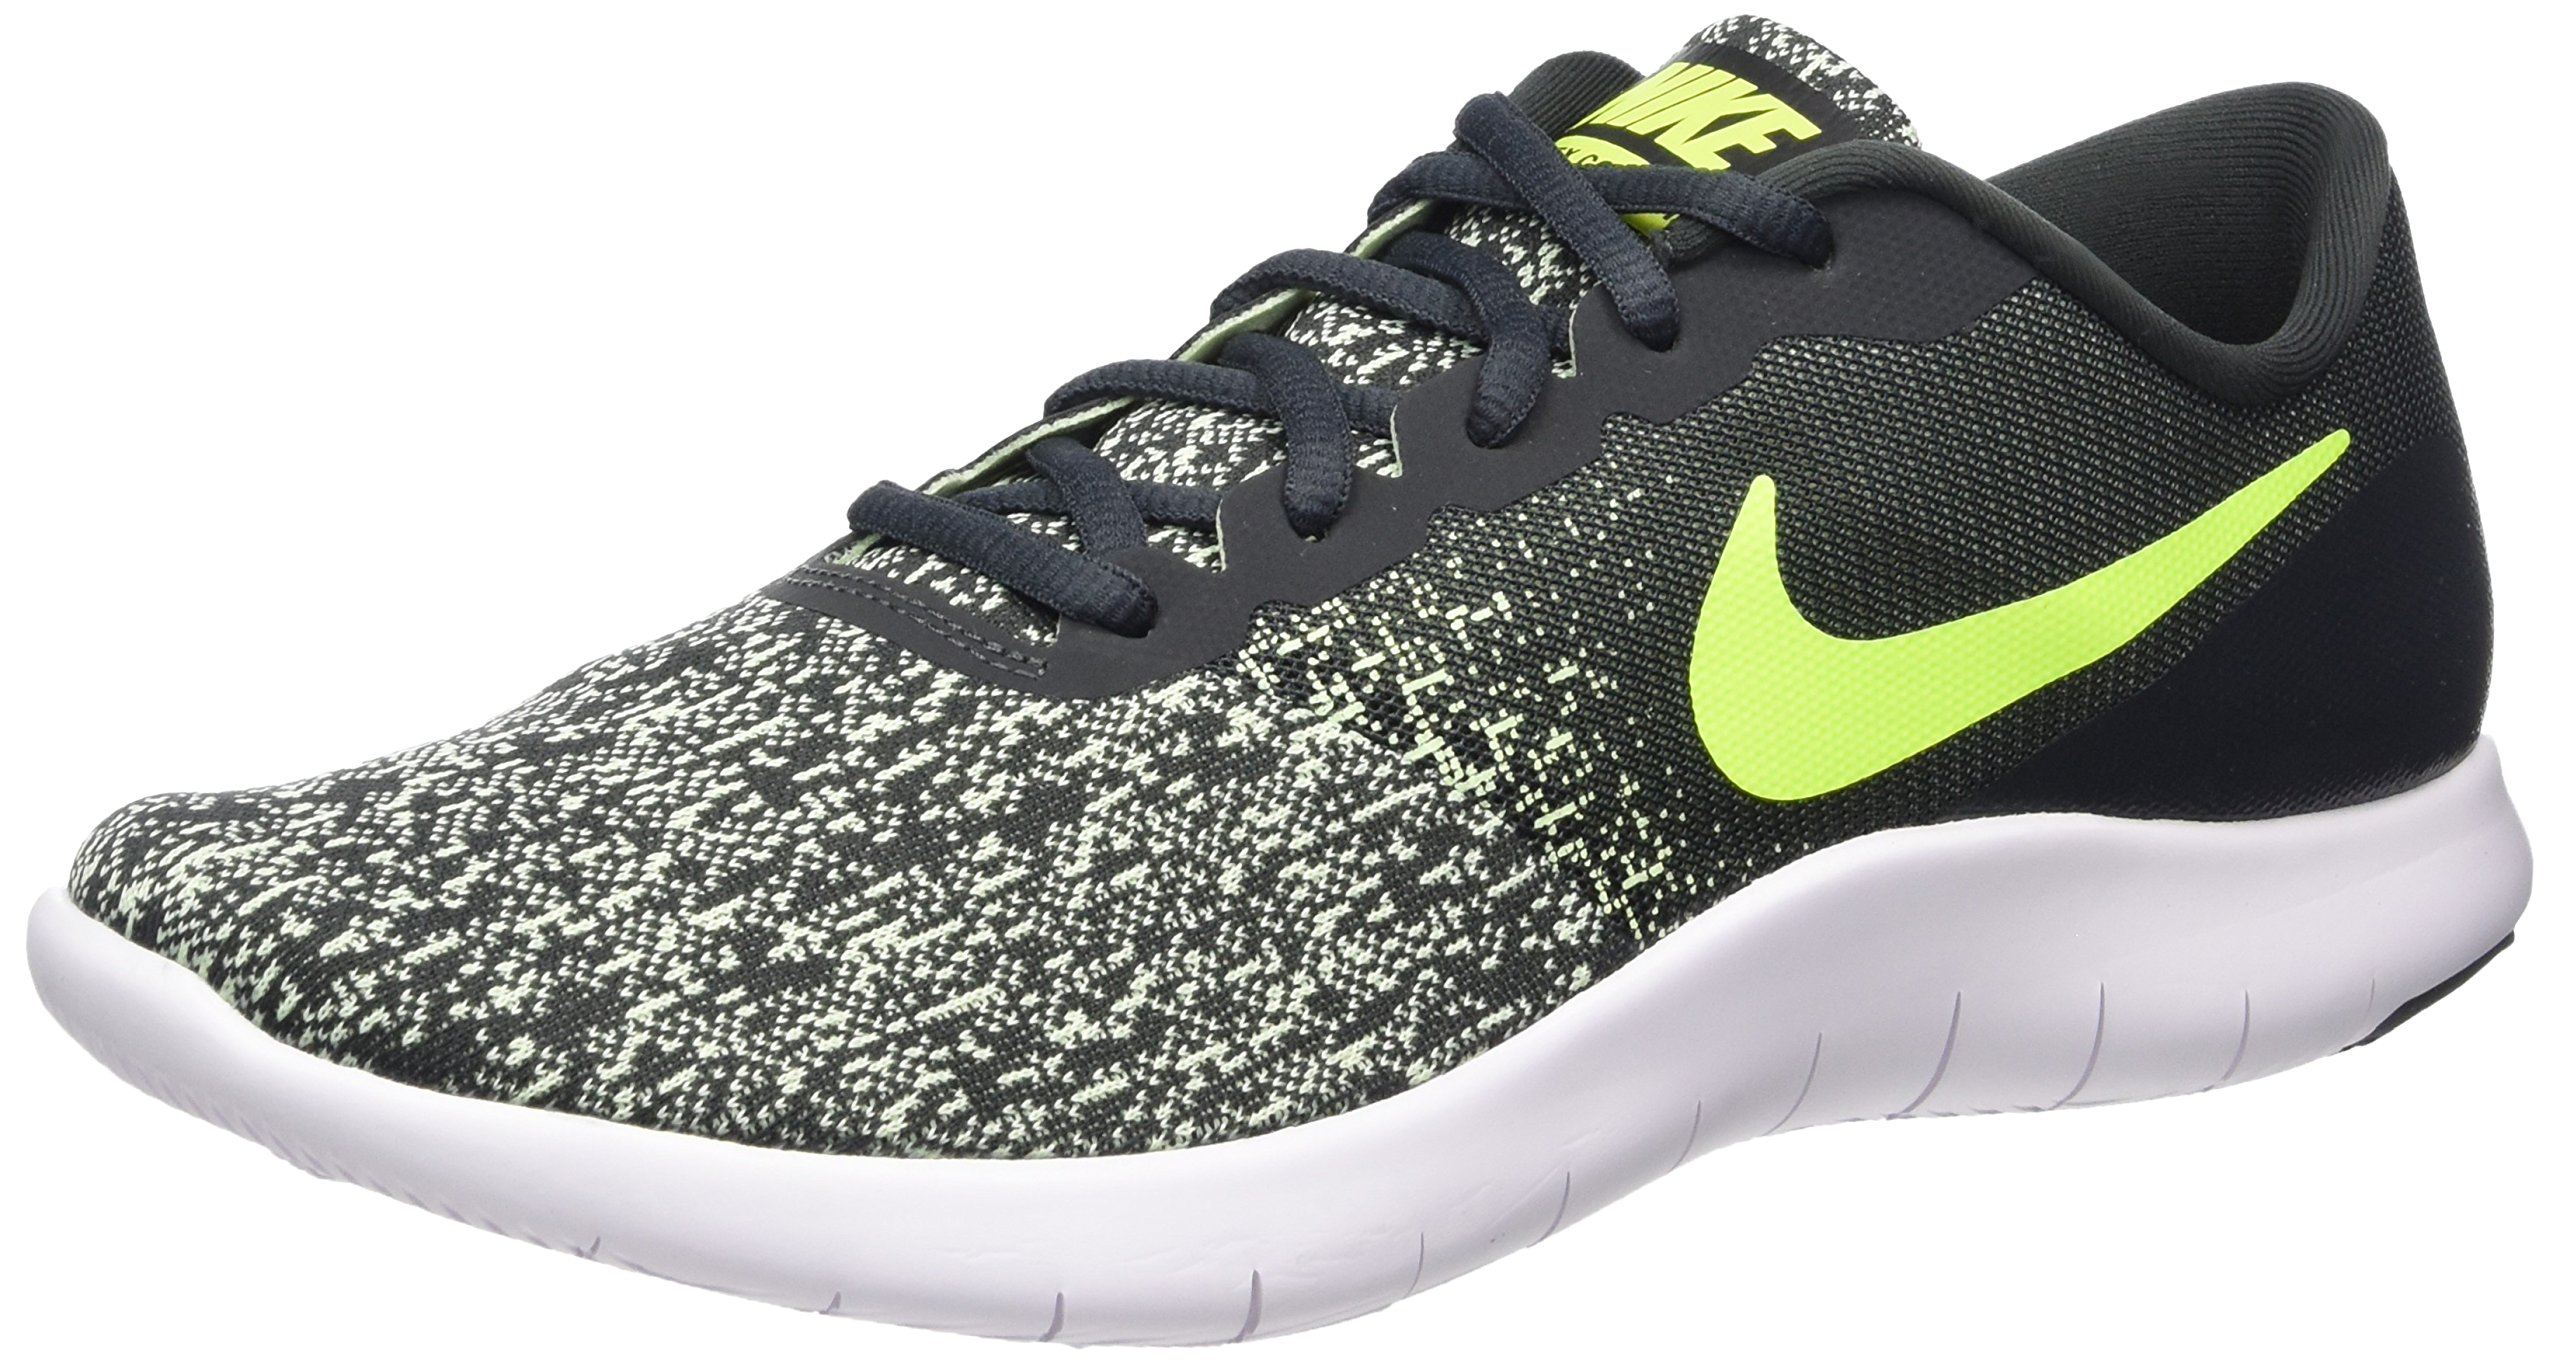 NIKE Men's Flex Contact Running Shoe Anthracite/Volt-Barely Volt-White 9.5 by NIKE